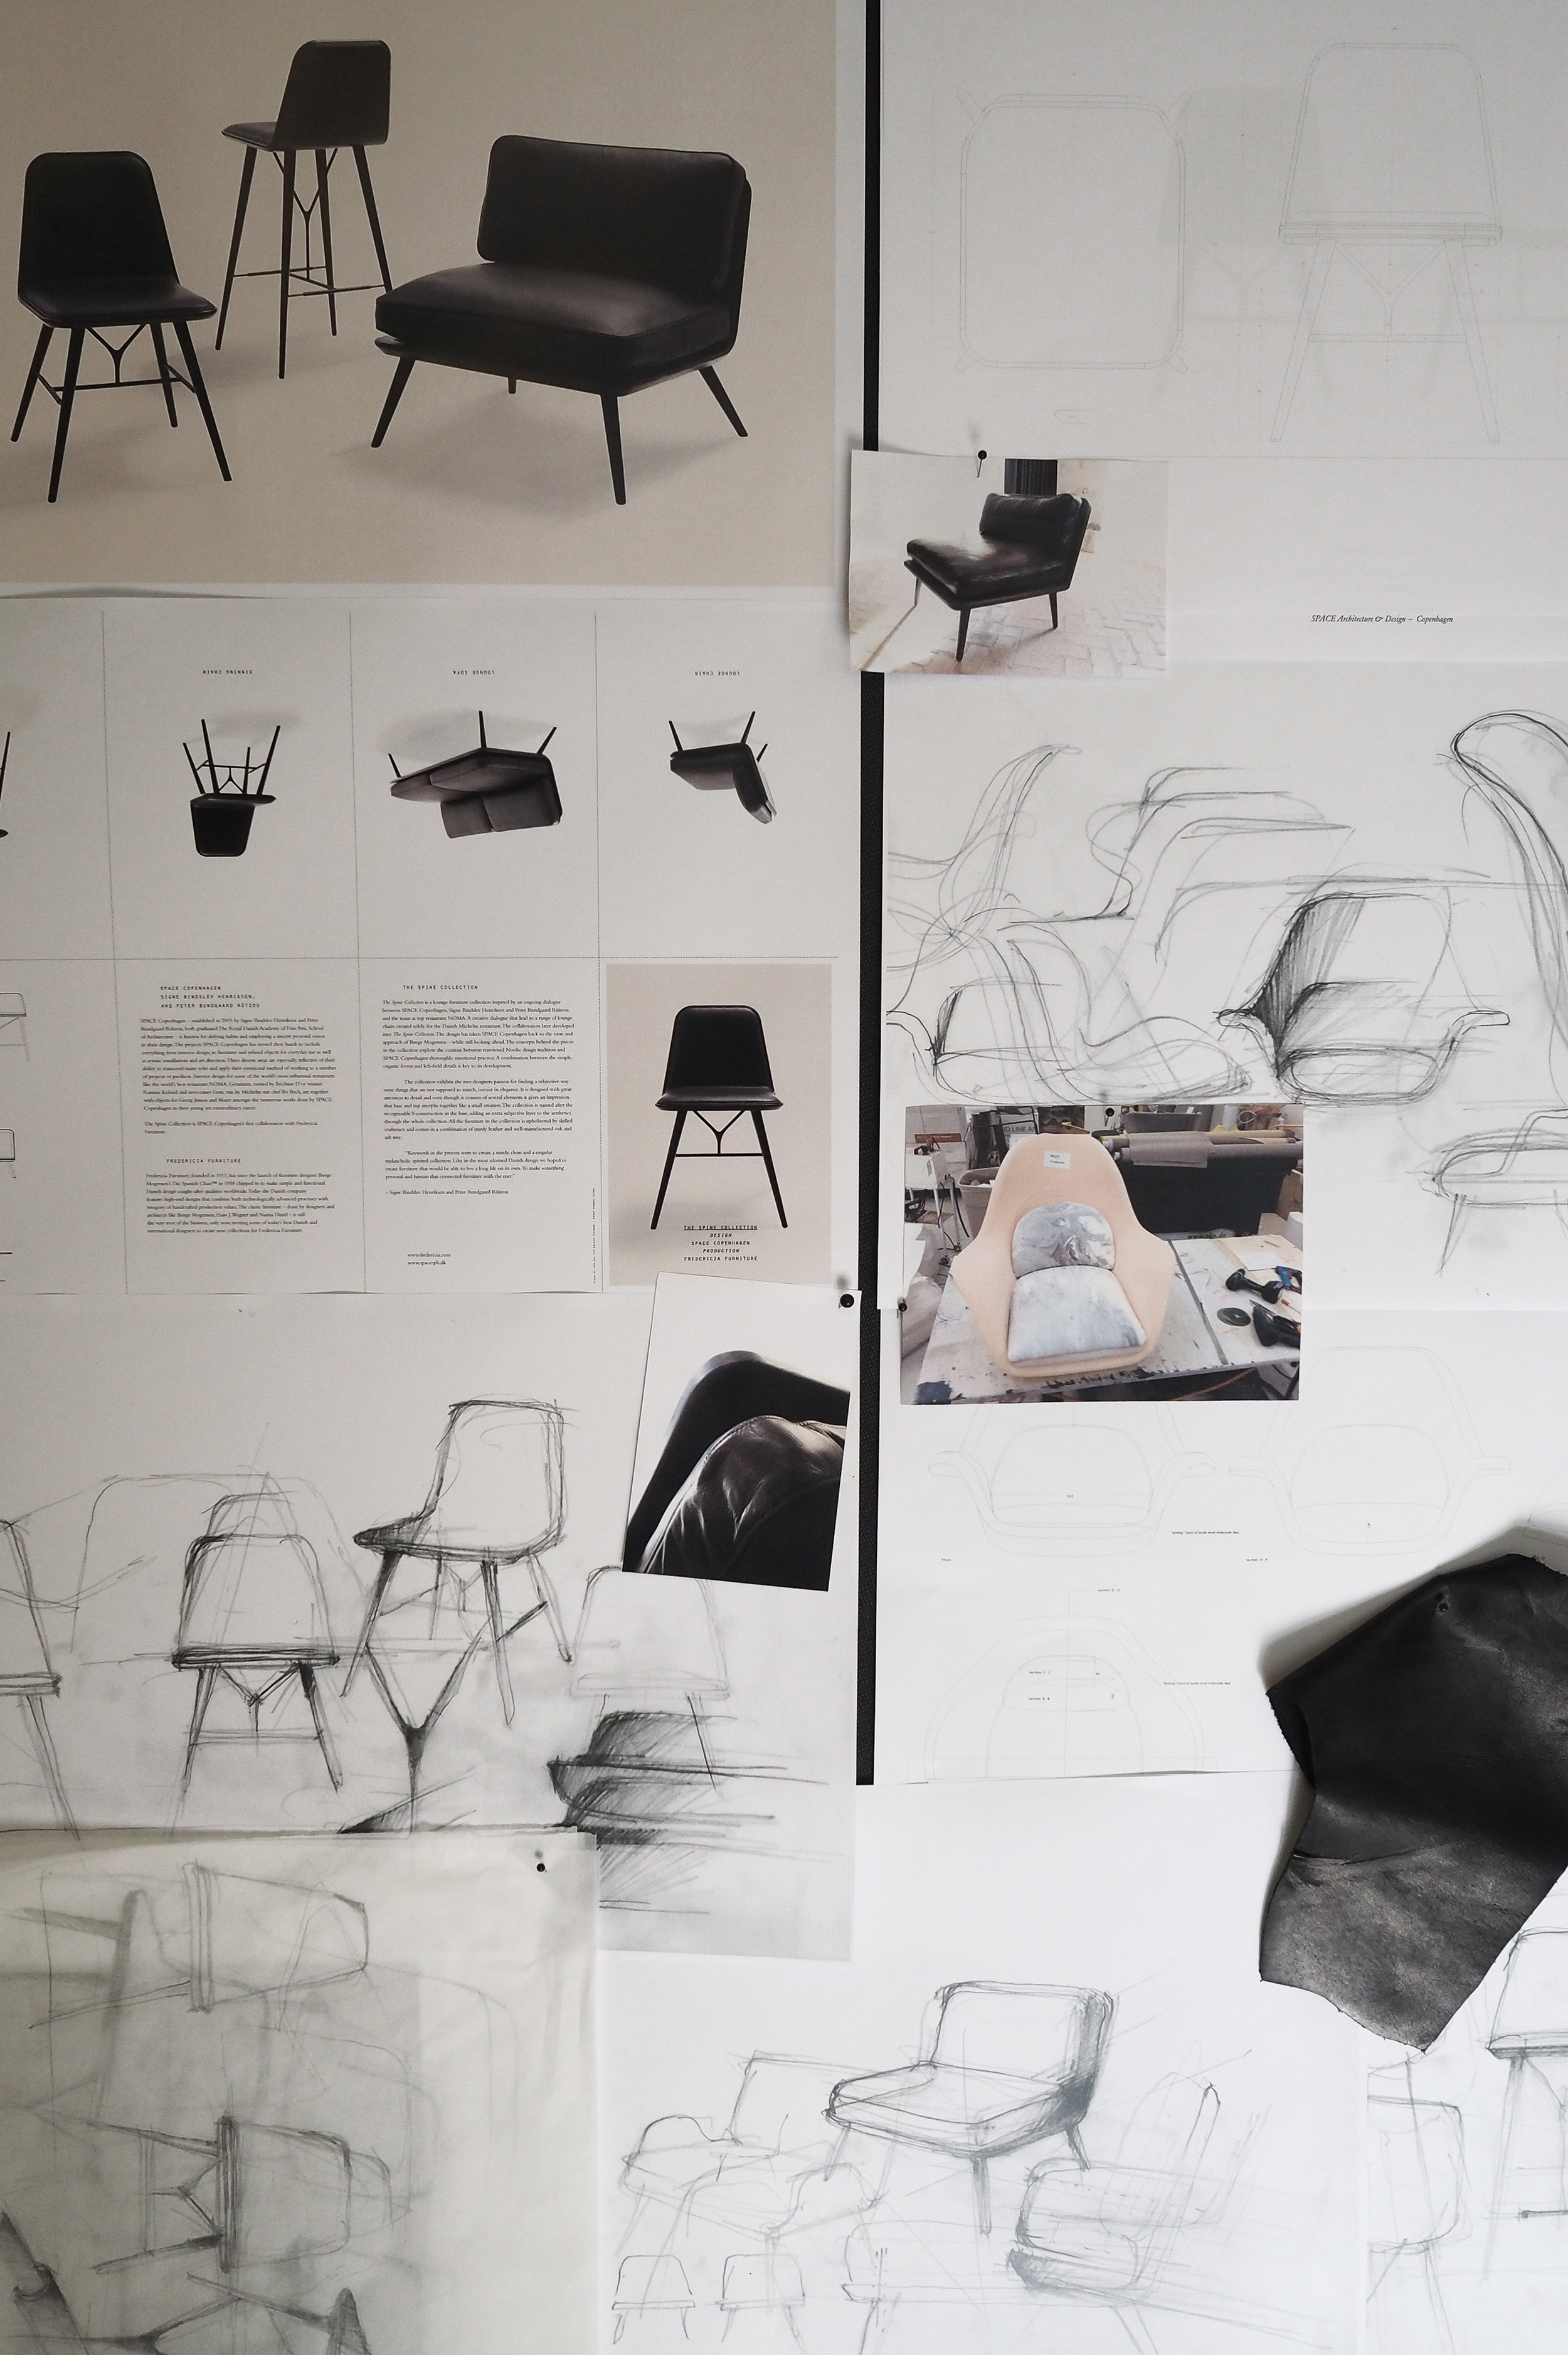 Space Copenhagen sketches for Fredericia chairs, Spine collection and Swoon Collection. Danish Design